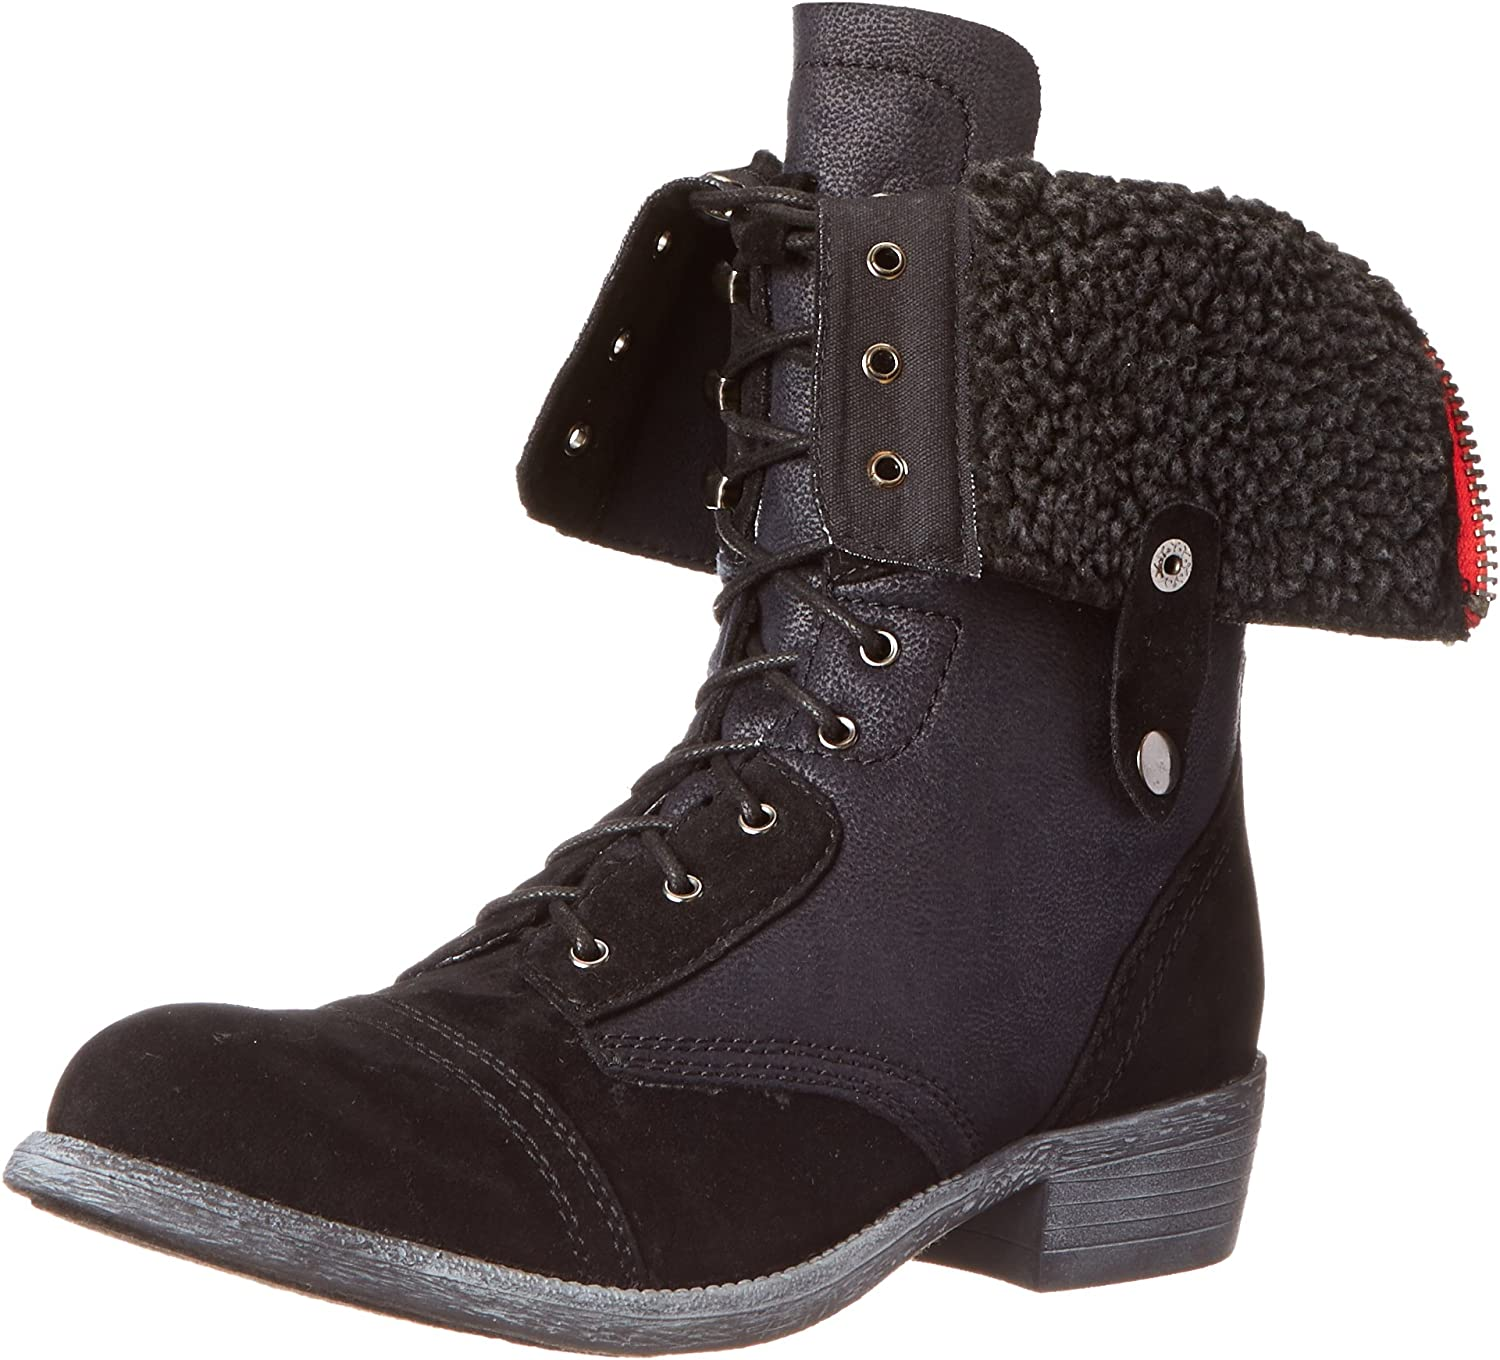 Rbls Women's Andale Combat Boot